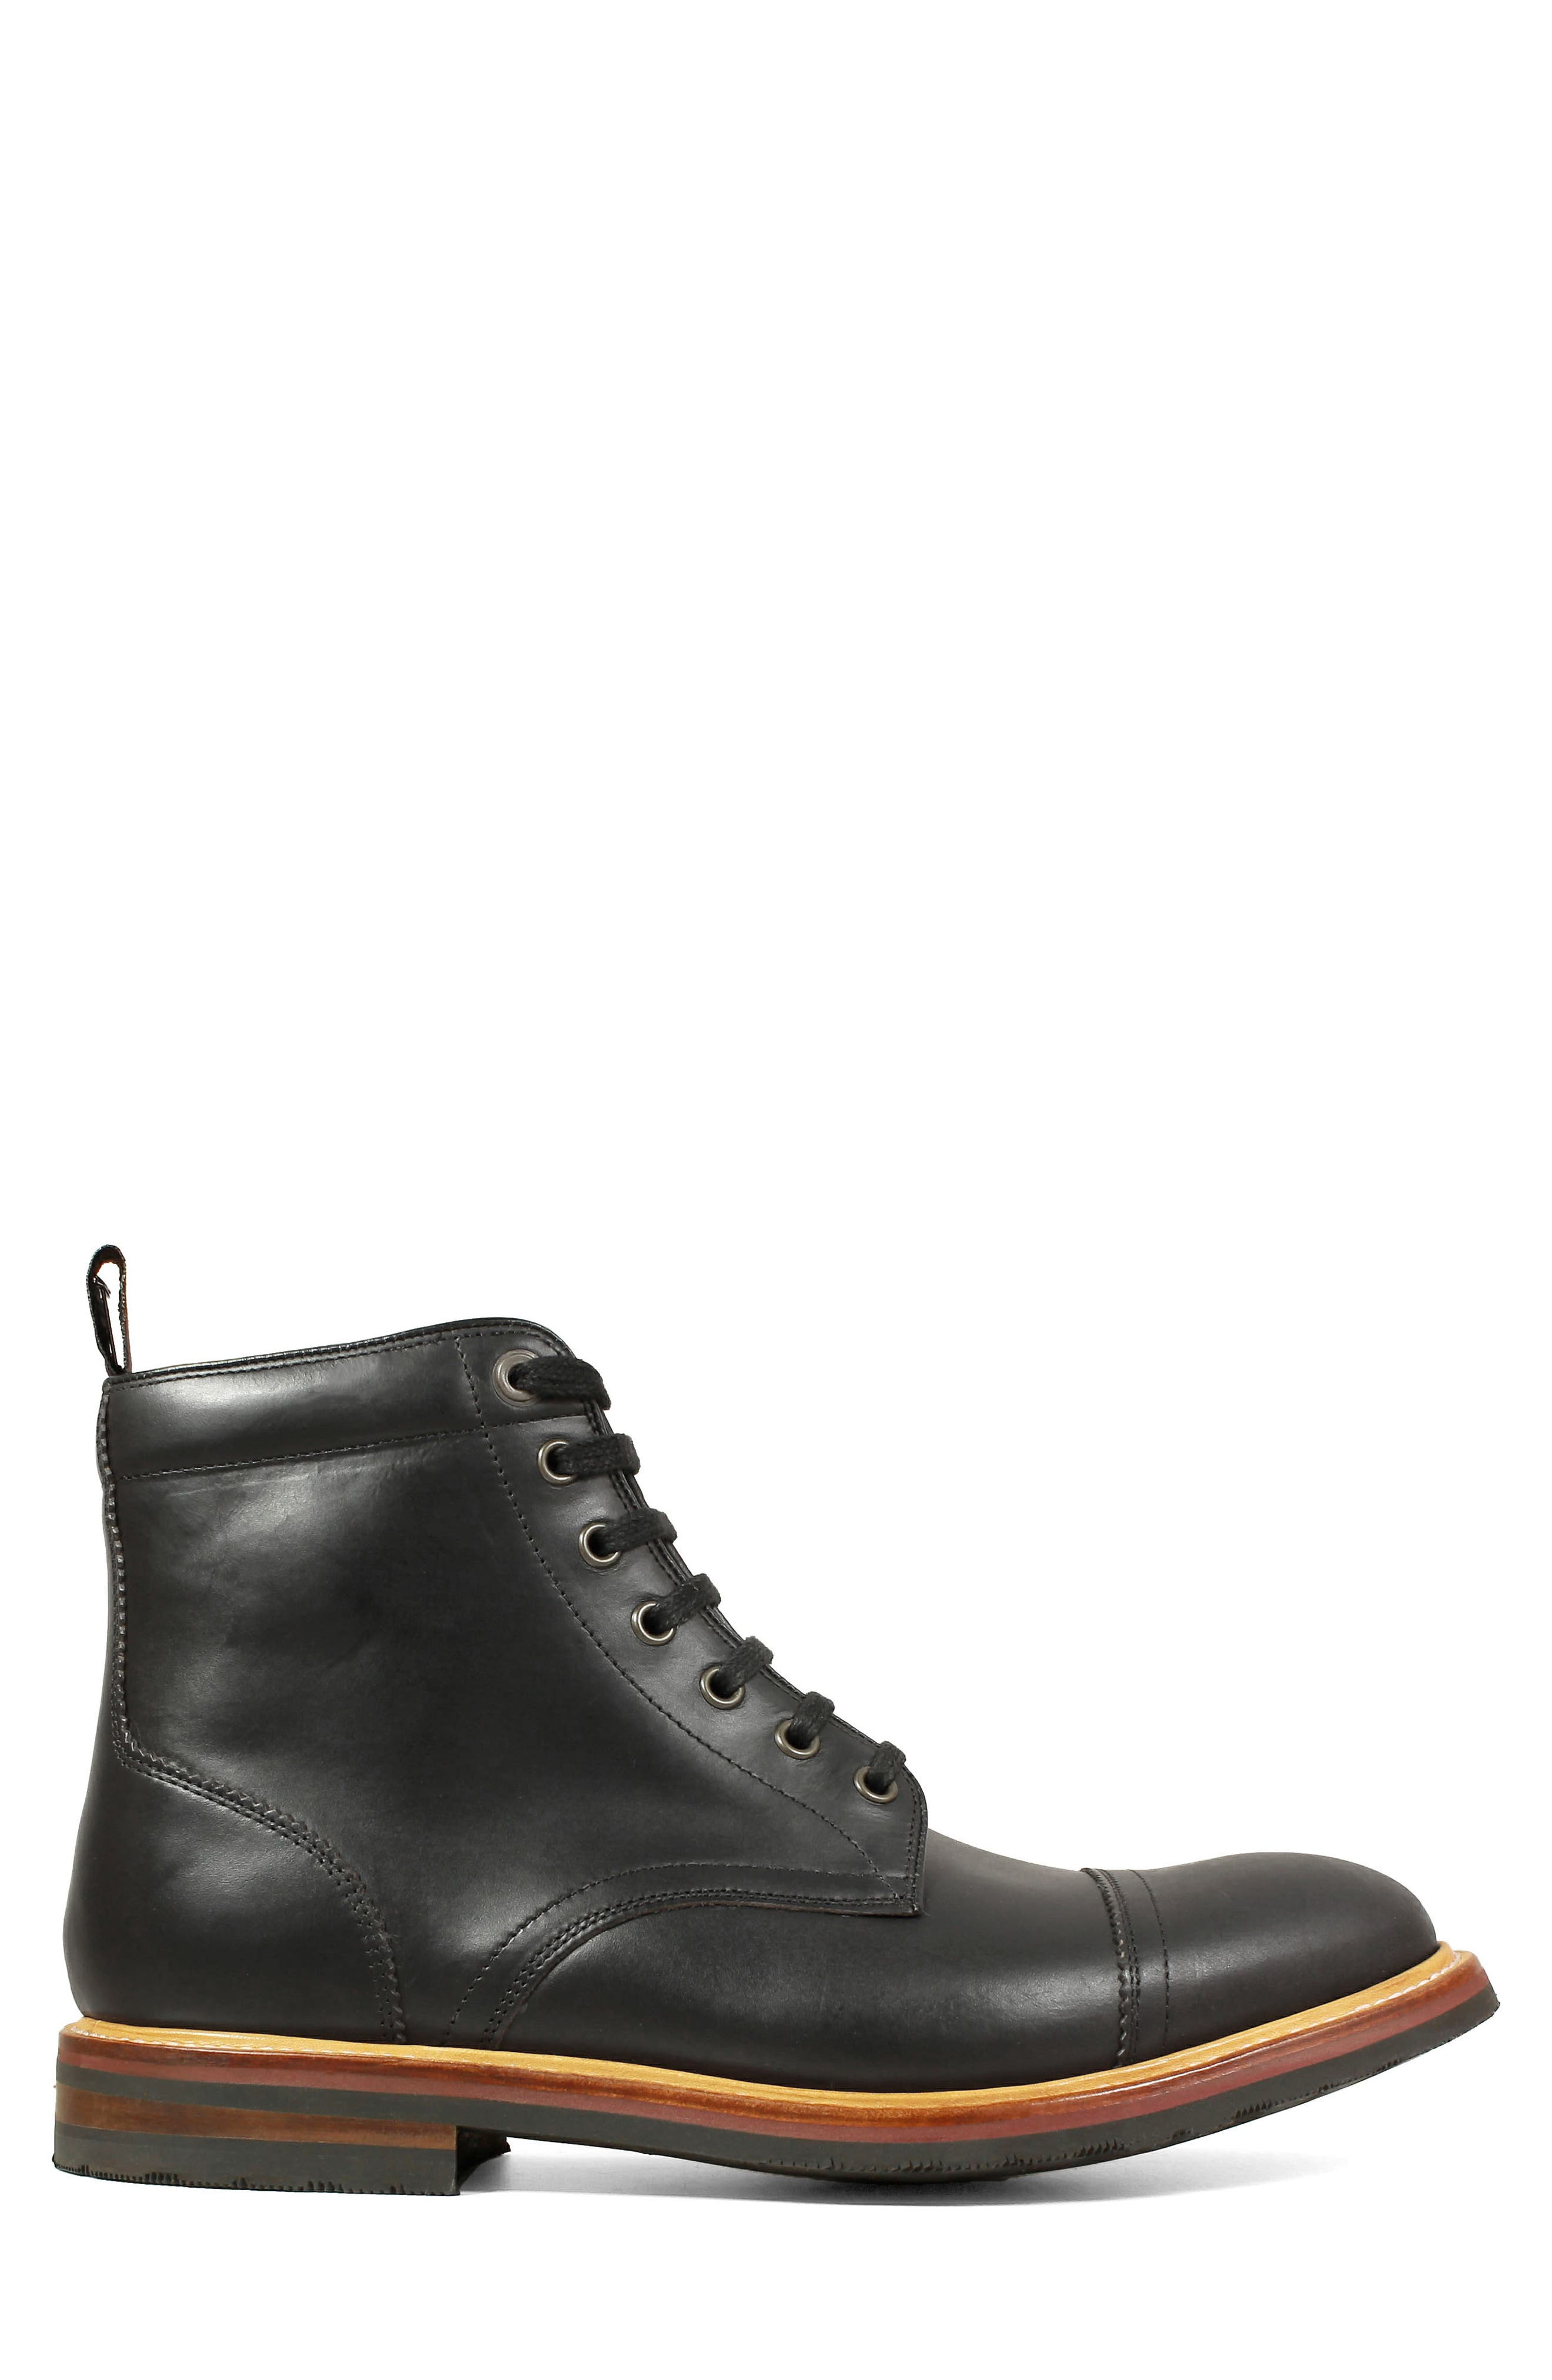 Founcry Cap Toe Boot,                             Alternate thumbnail 3, color,                             BLACK LEATHER